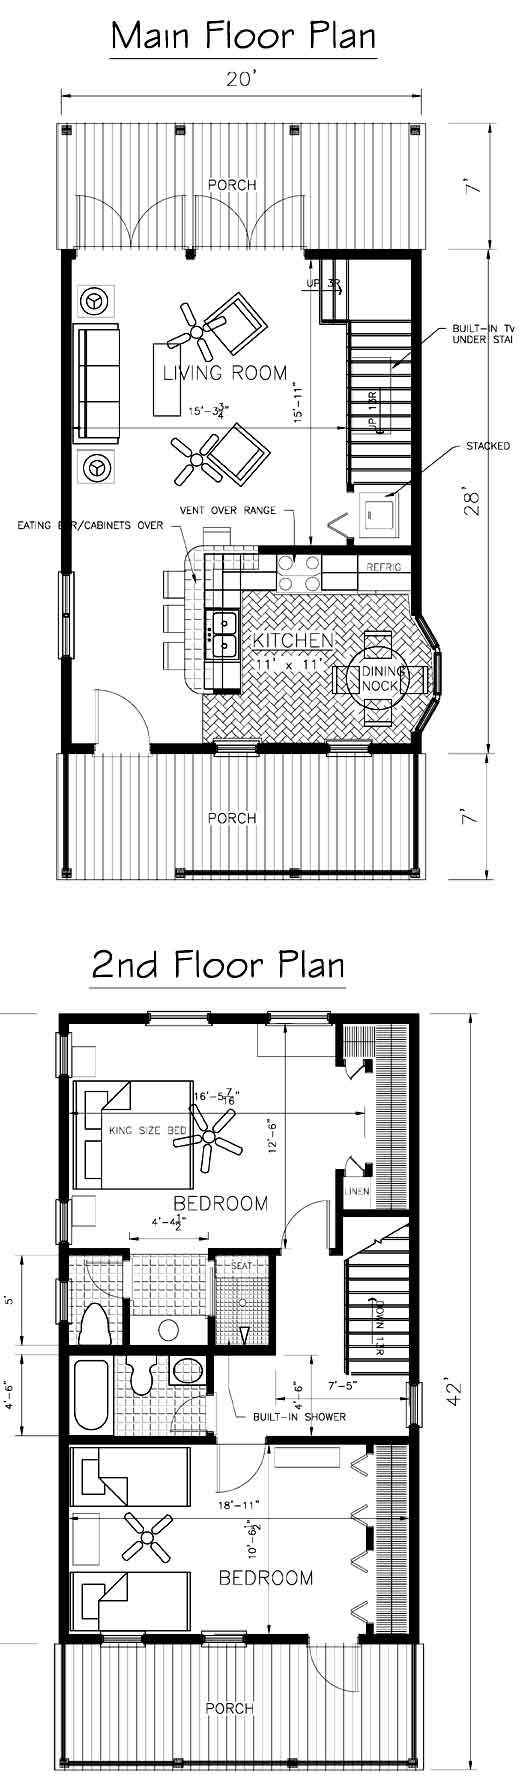 Nice, simple plan - just turn the kitchen for a bigger dining room.